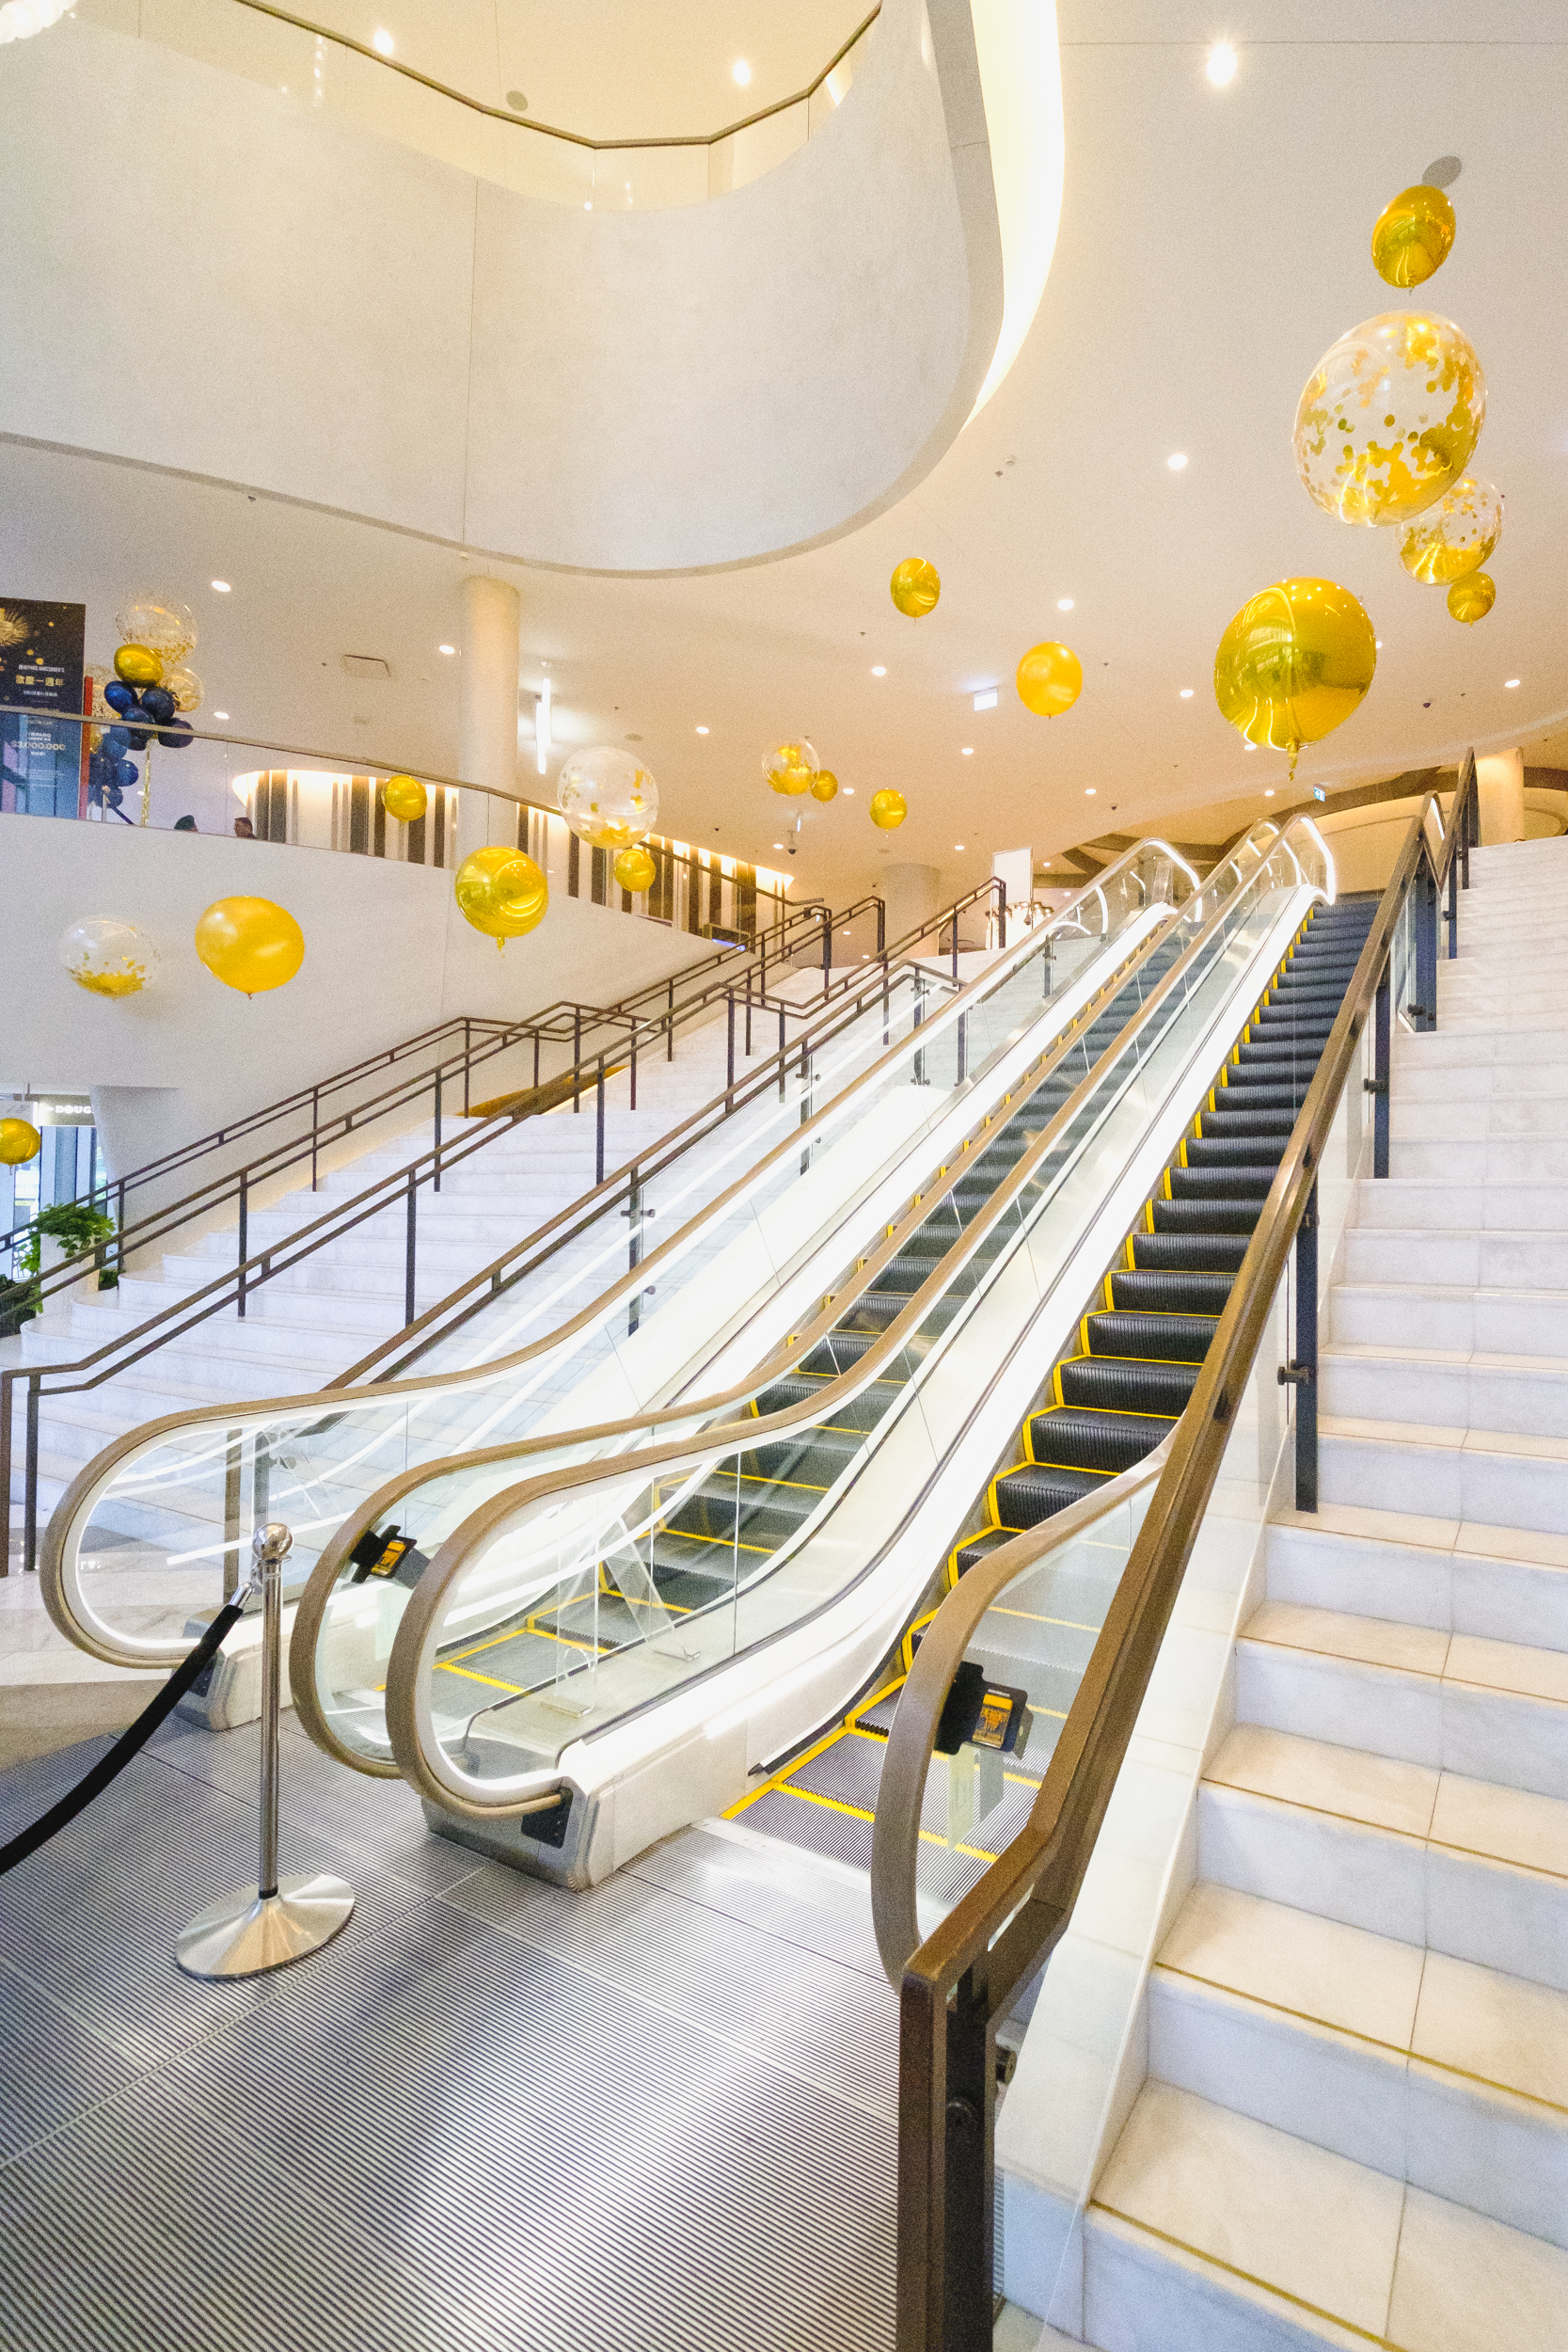 Upon entering Parq, a grand foyer and staircase greets your arrival. Highlighting the strong architectural presence, a subtle but timeless installation was created. Gold foil orbs and confetti filled balloons float effortlessly at staggered heights creating a show stopping vantage perfect for a celebration. -